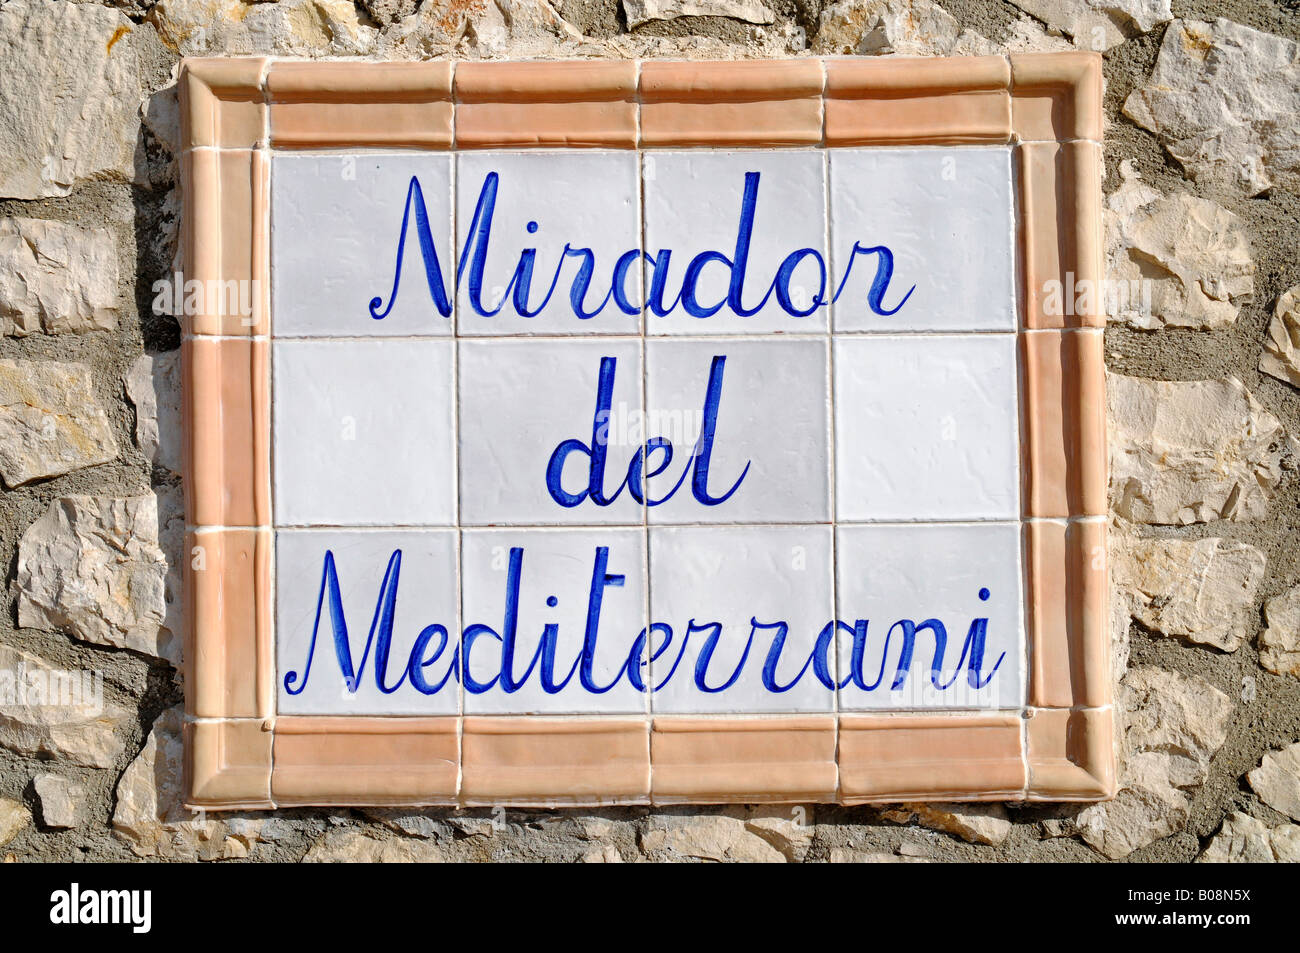 Sign, Mirador del Mediterrani, lookout point, Mediterranean, Spanish tiles, Teulada, Alicante, Costa Blanca, Spain Stock Photo